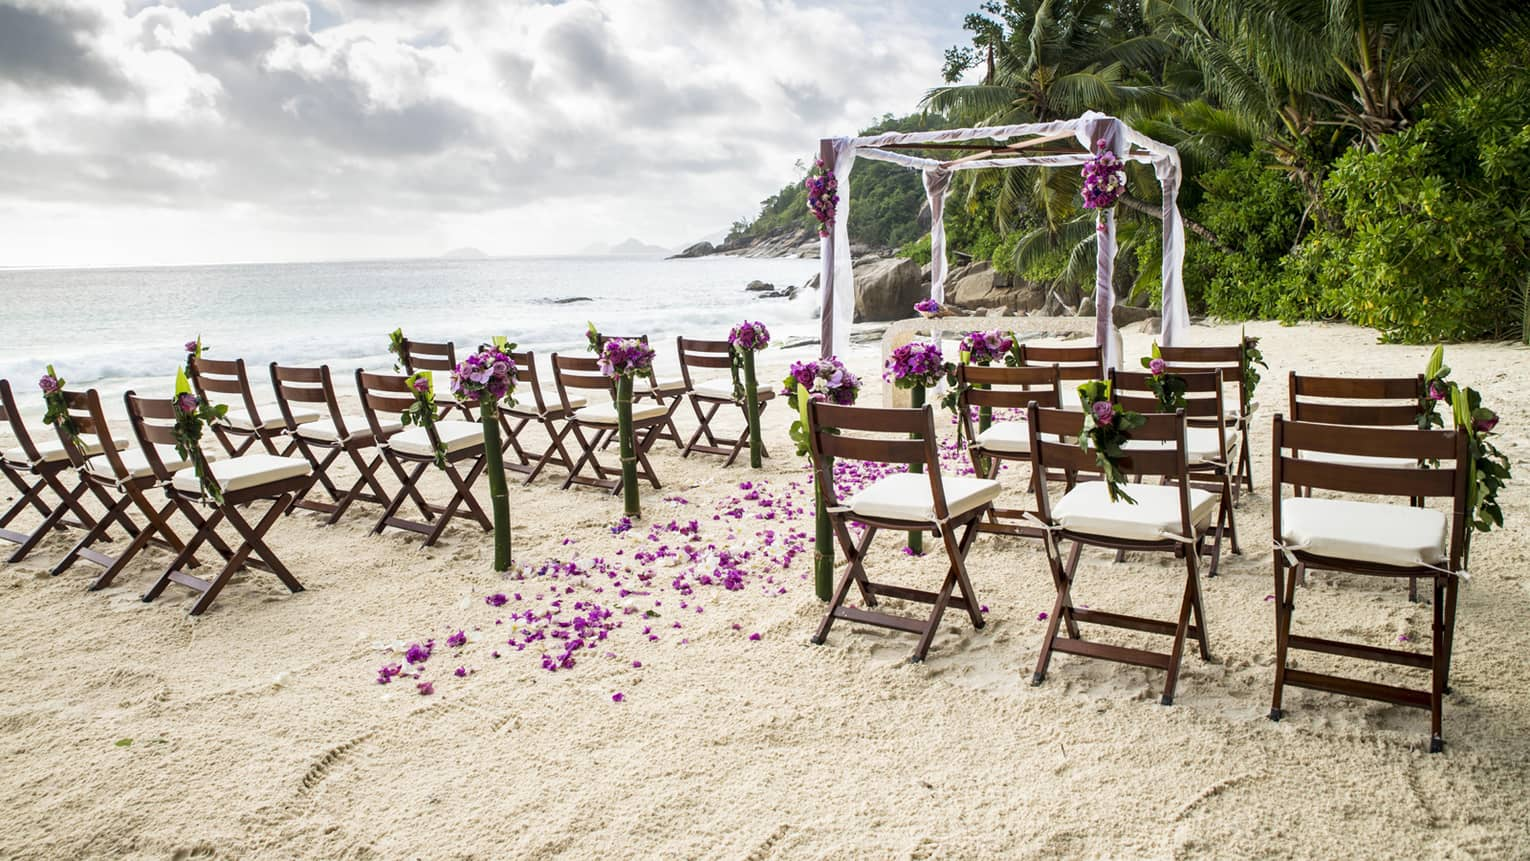 Rows of wooden chairs on sand in front of canopy decorated with purple flowers by ocean